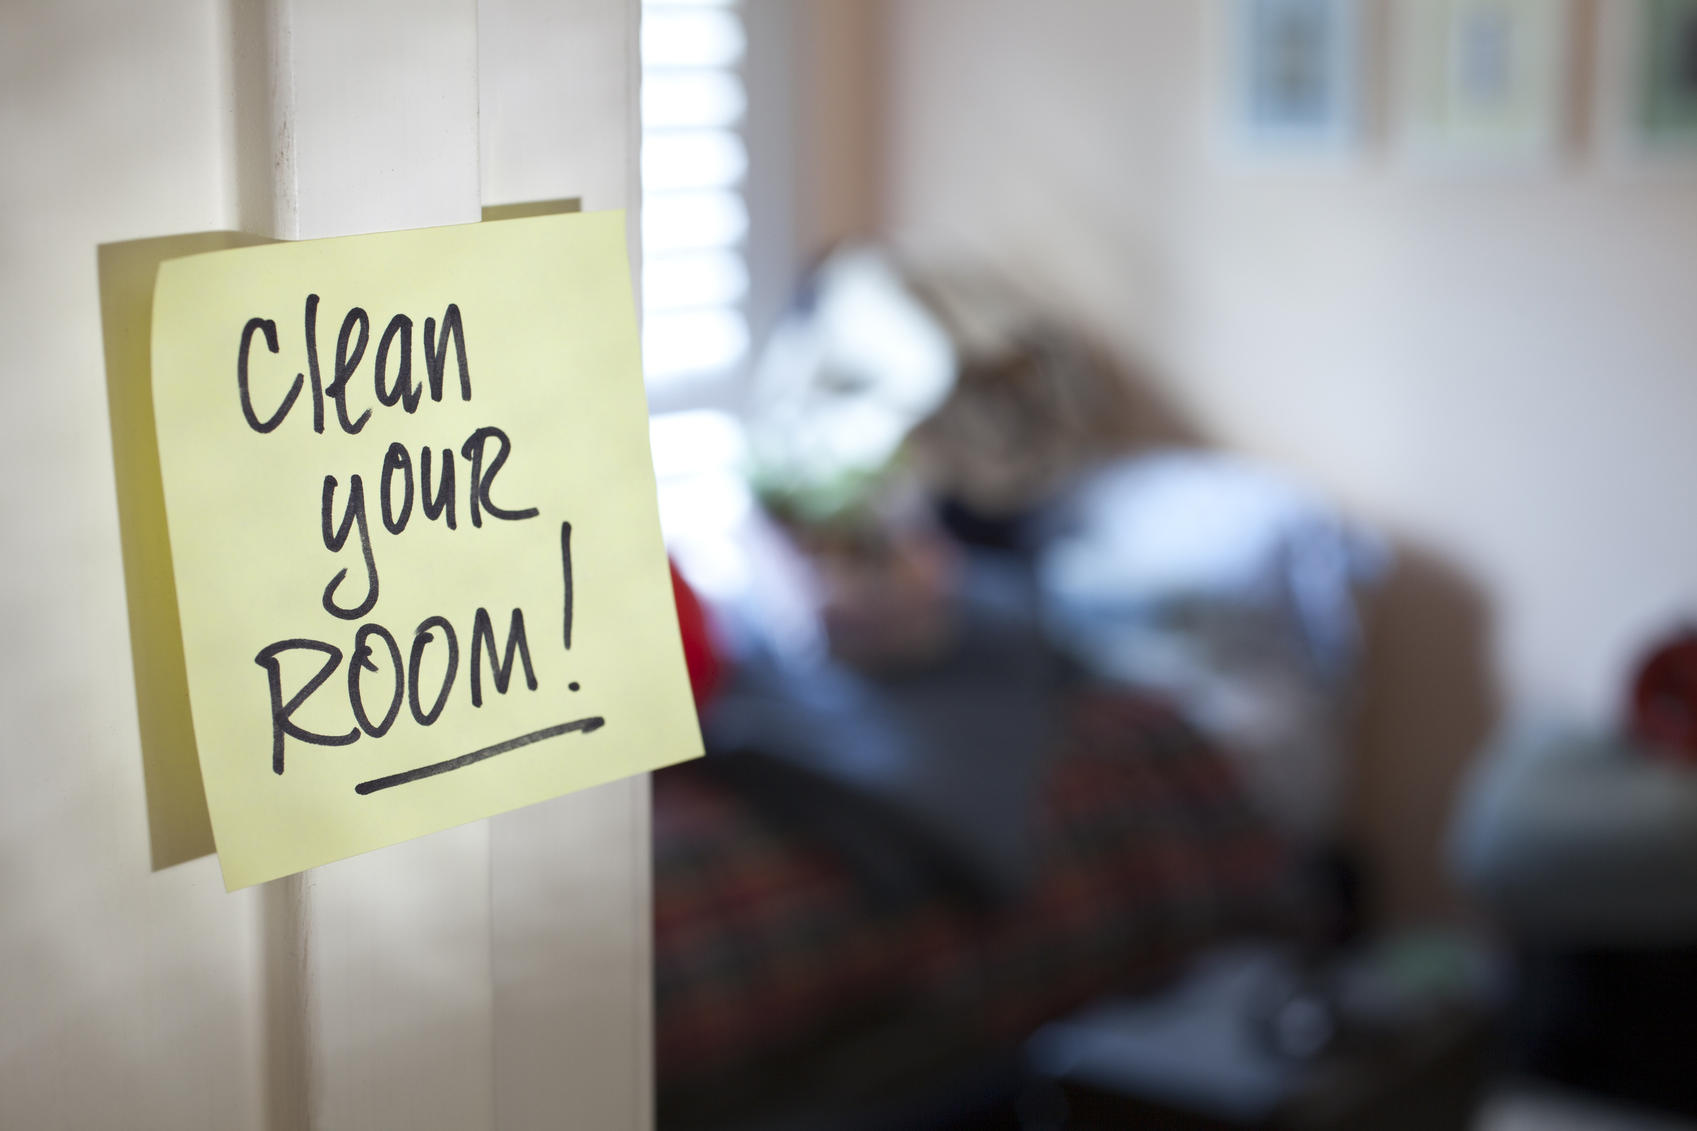 Clean your room post it on a bedroom door